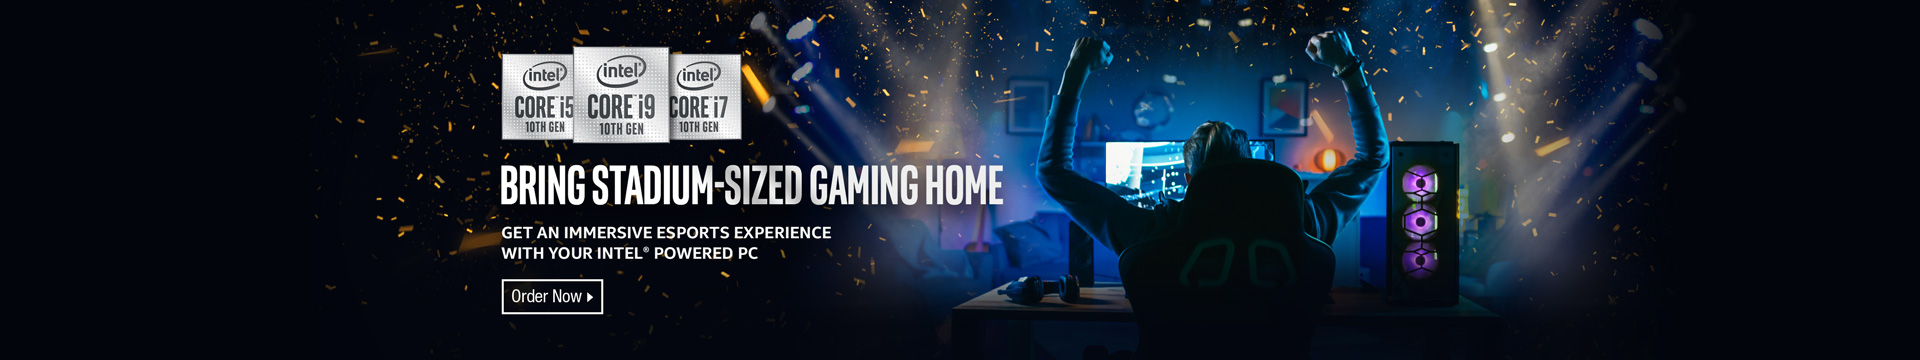 Bring Stadium Sized Gaming Home